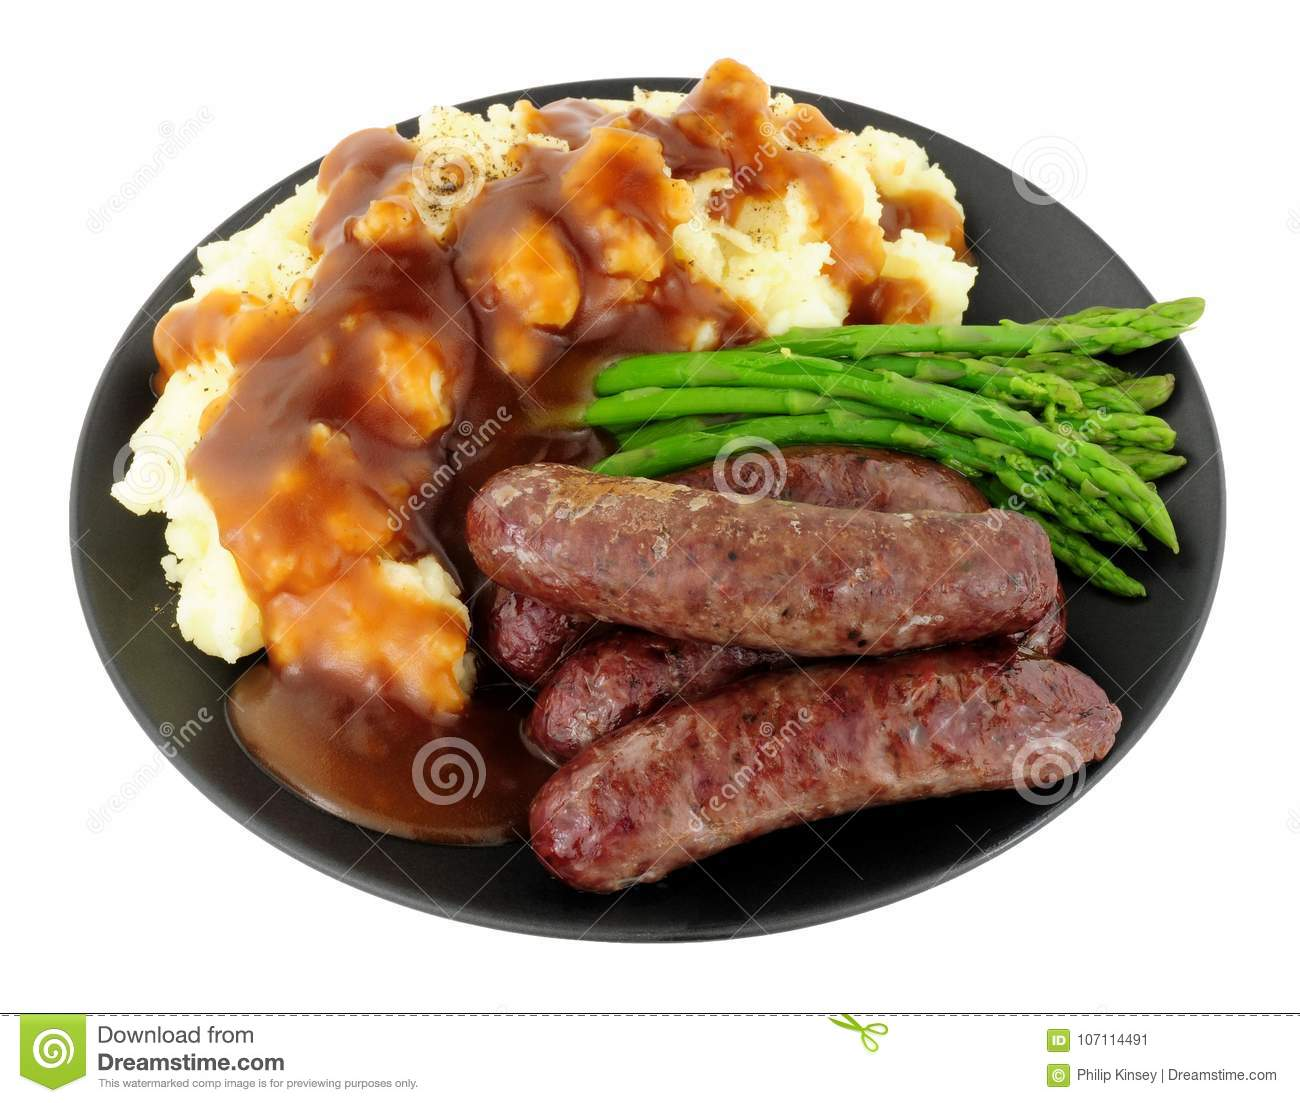 Fried Venison Sausages Meal